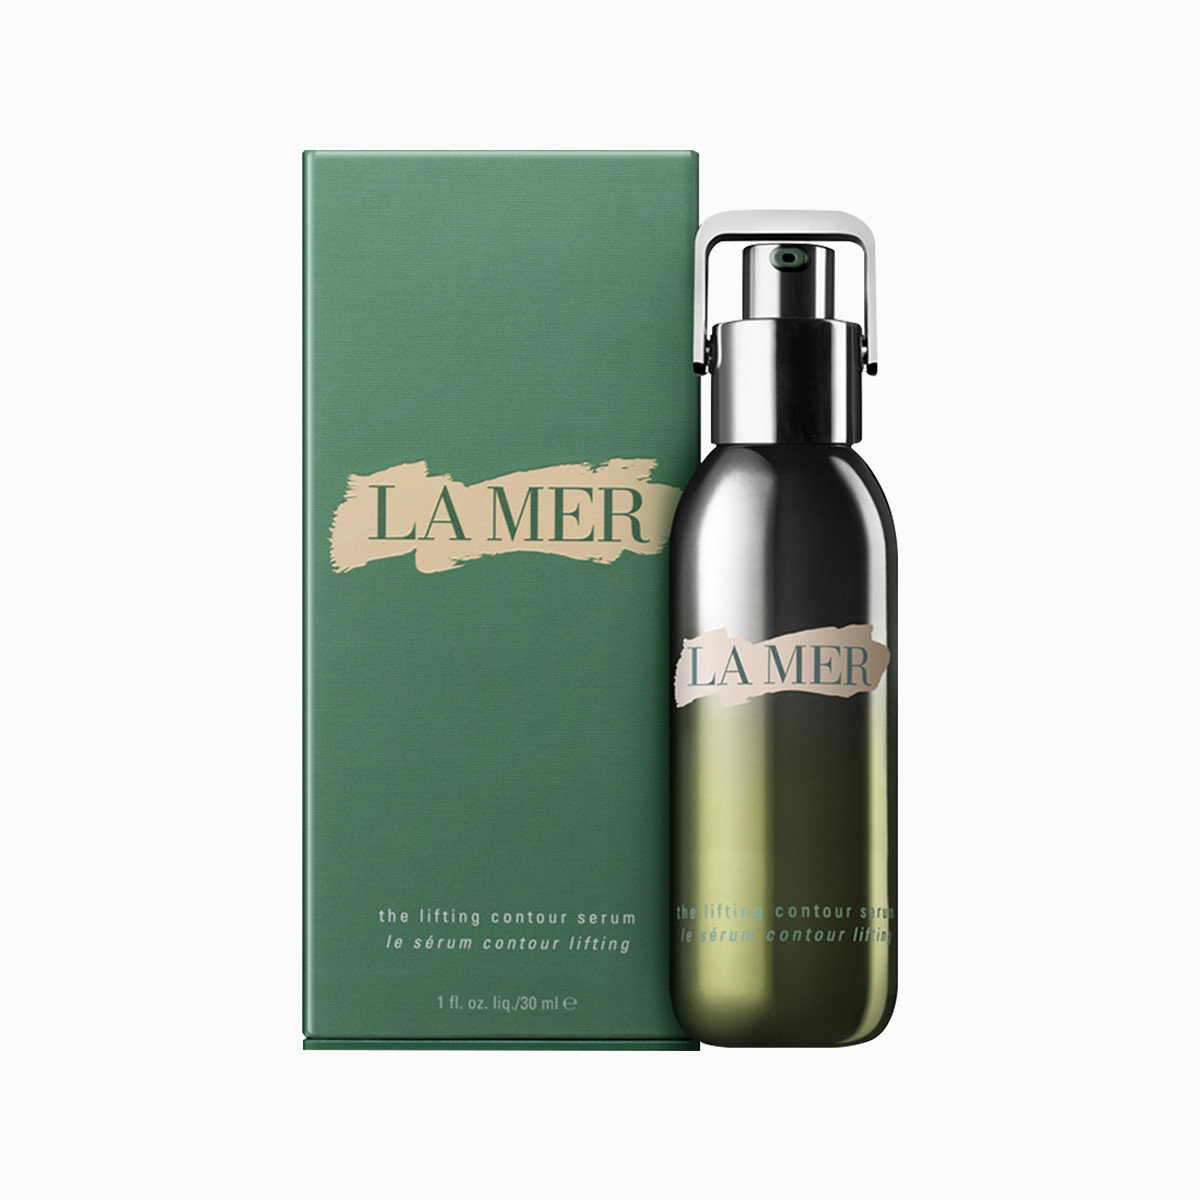 The Lifting Contour Serum 30ml (Parallel Import)